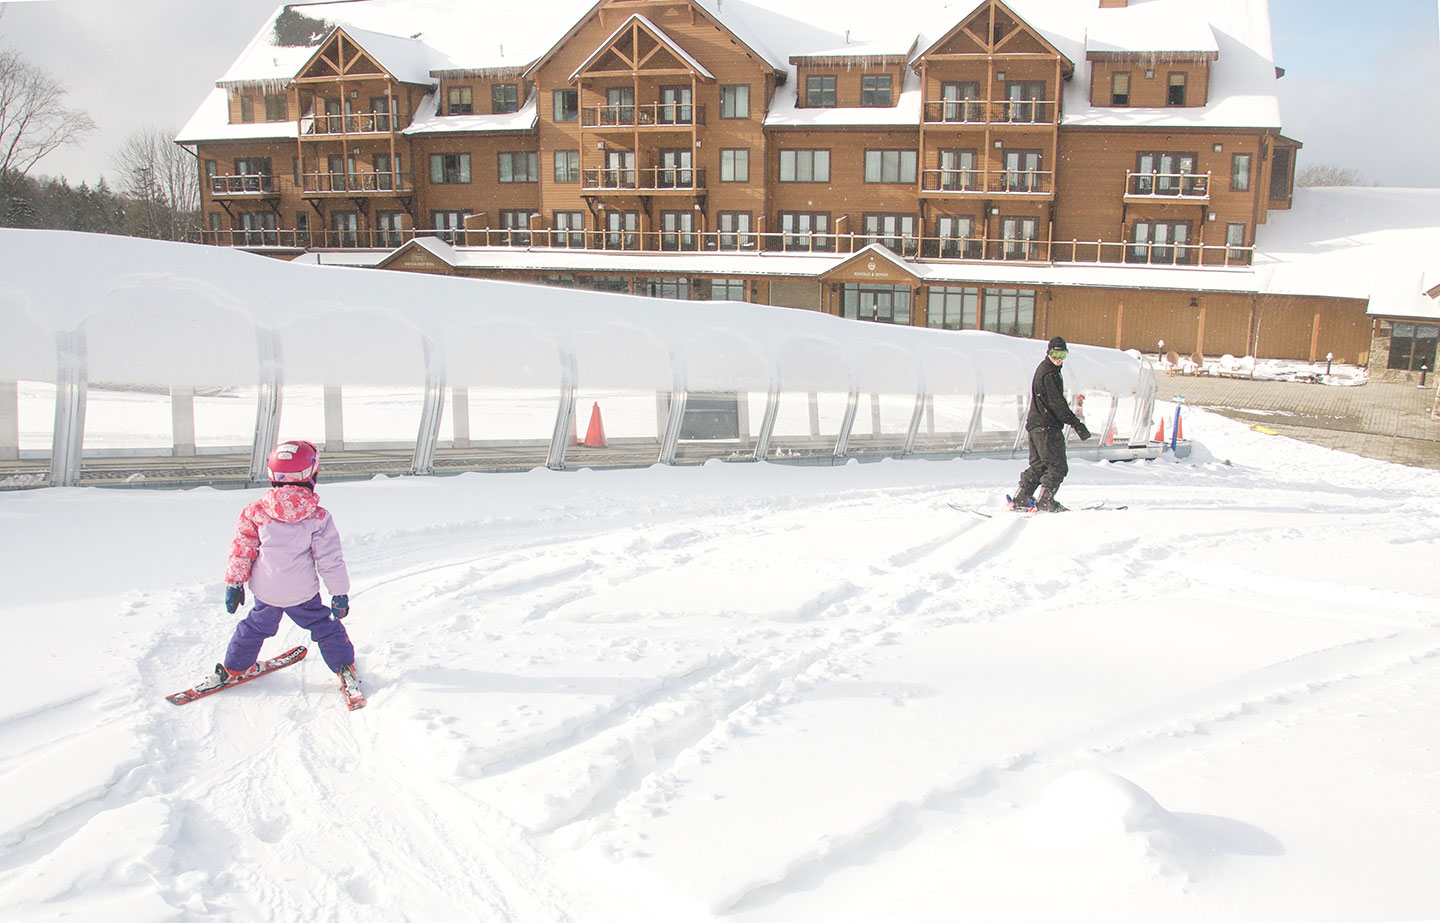 Burke Mountain's New Hotel Offers a Winter Getaway with the Comforts of Home